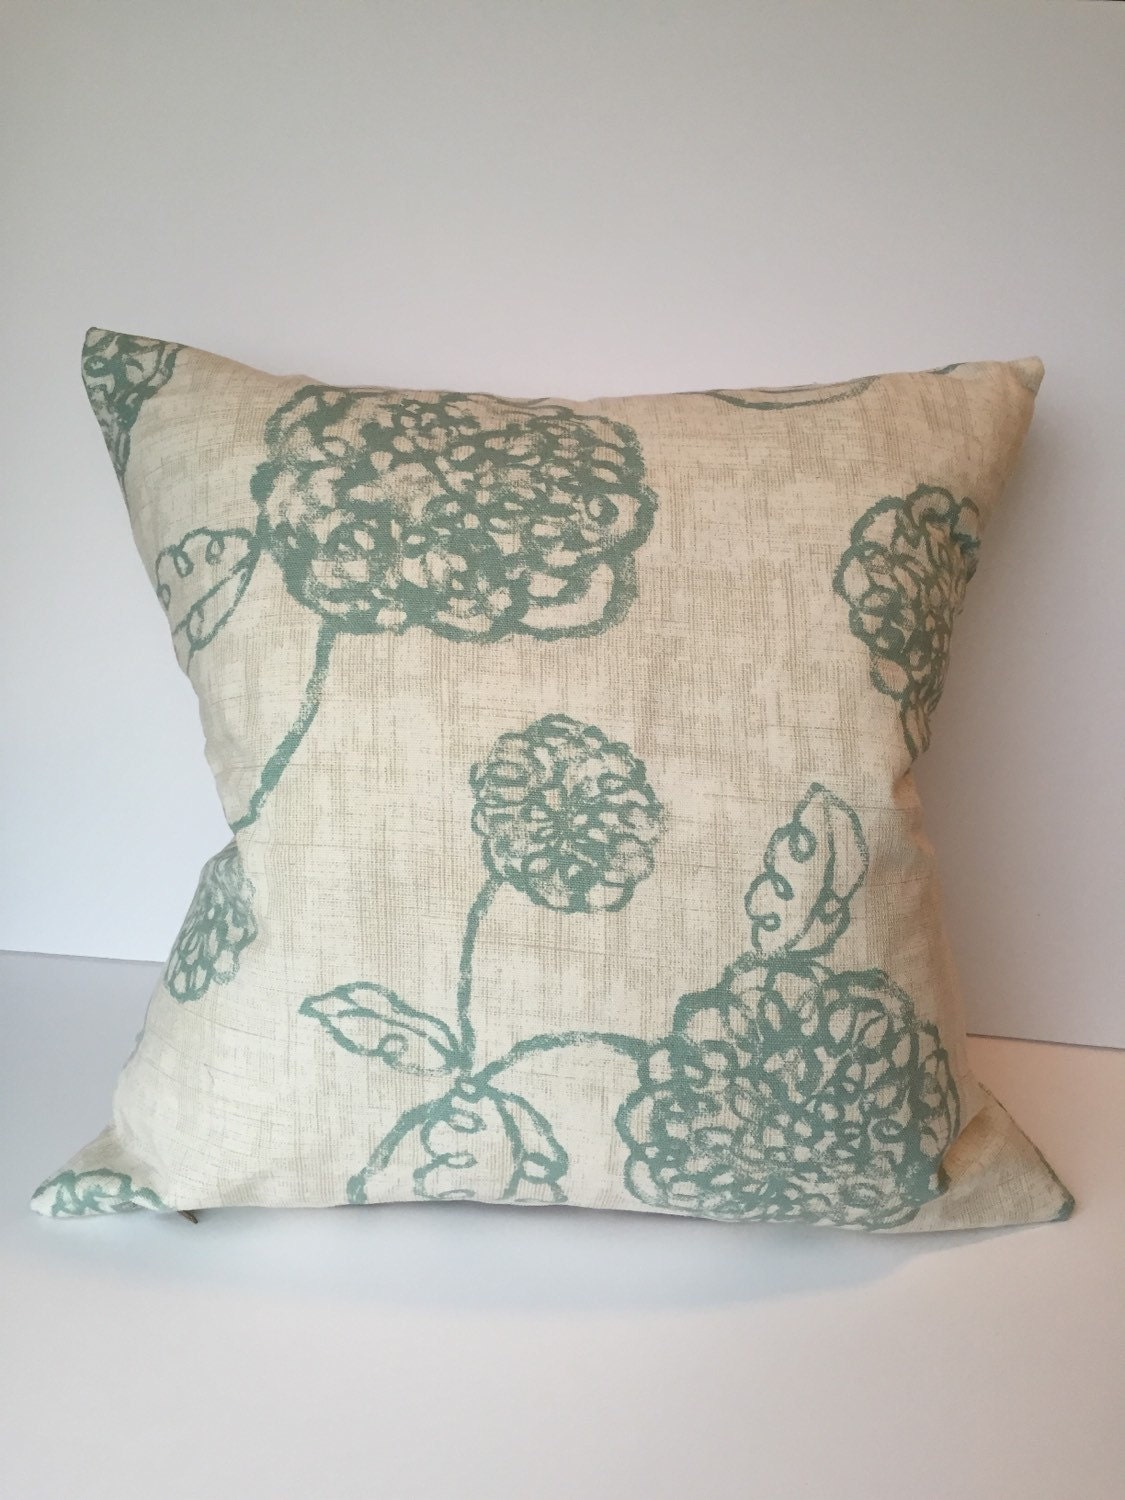 Throw Pillows For A Floral Couch : Sale Floral Pillows Throw pillows couch pillows by PlushPup